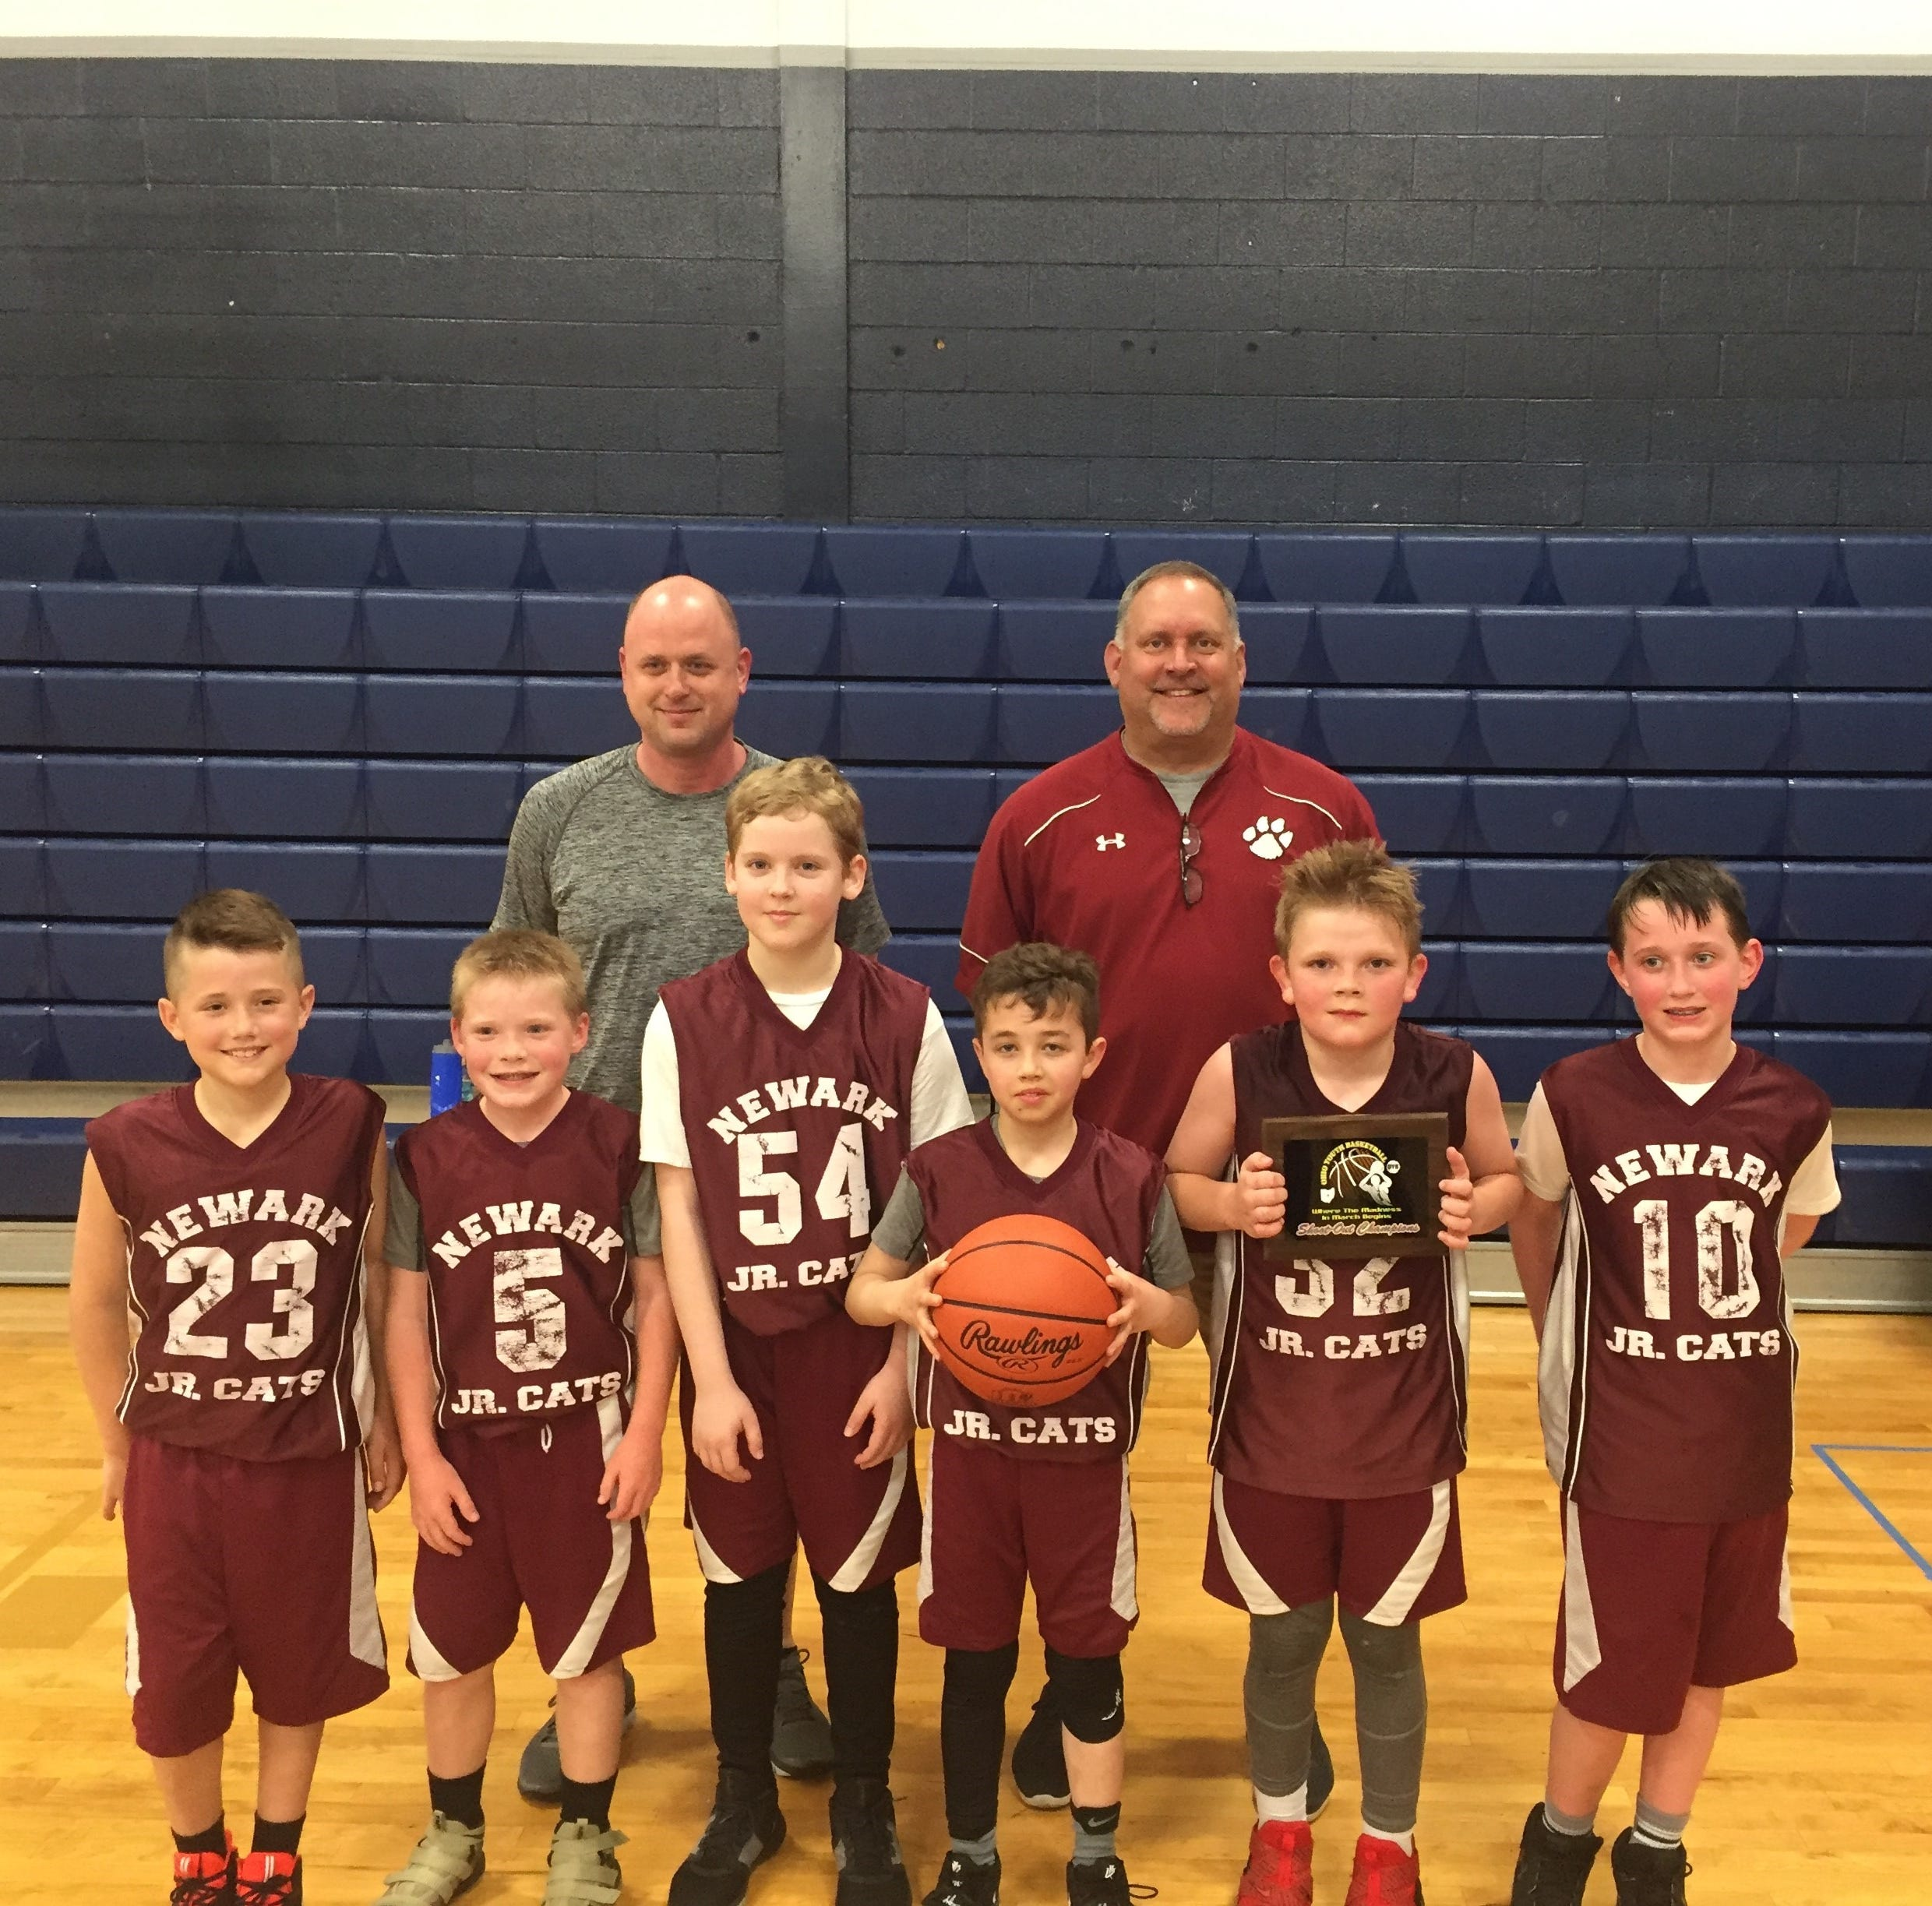 Newark Junior Cats teams win Ohio Youth championships